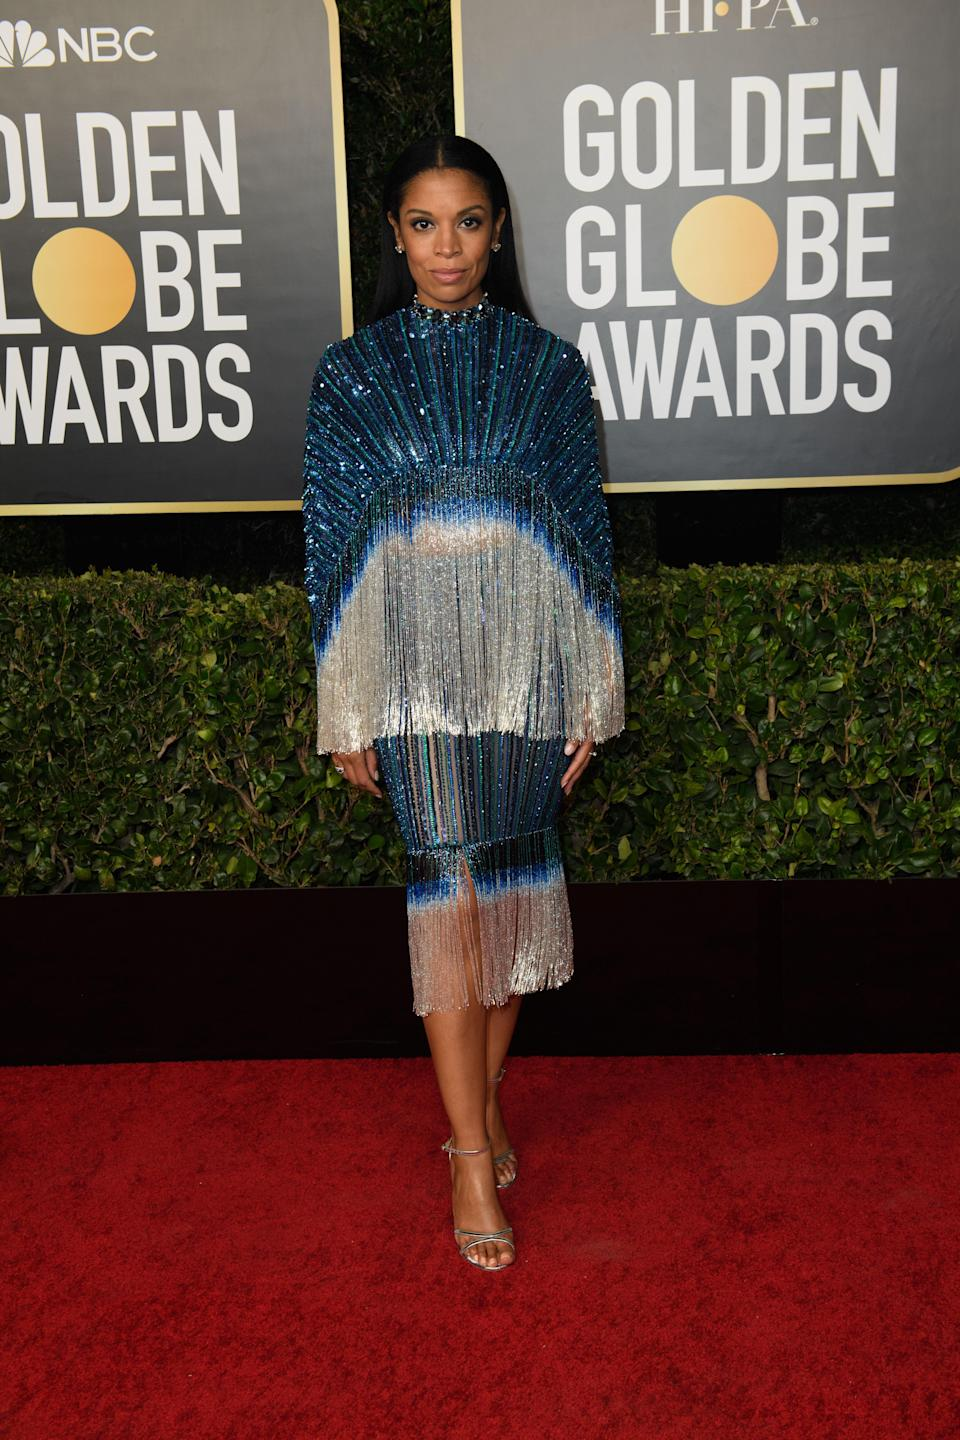 Susan Kelechi Watson also handed out an award and turned heads in a glittering, silver and blue two-piece outfit (HFPA/PA)